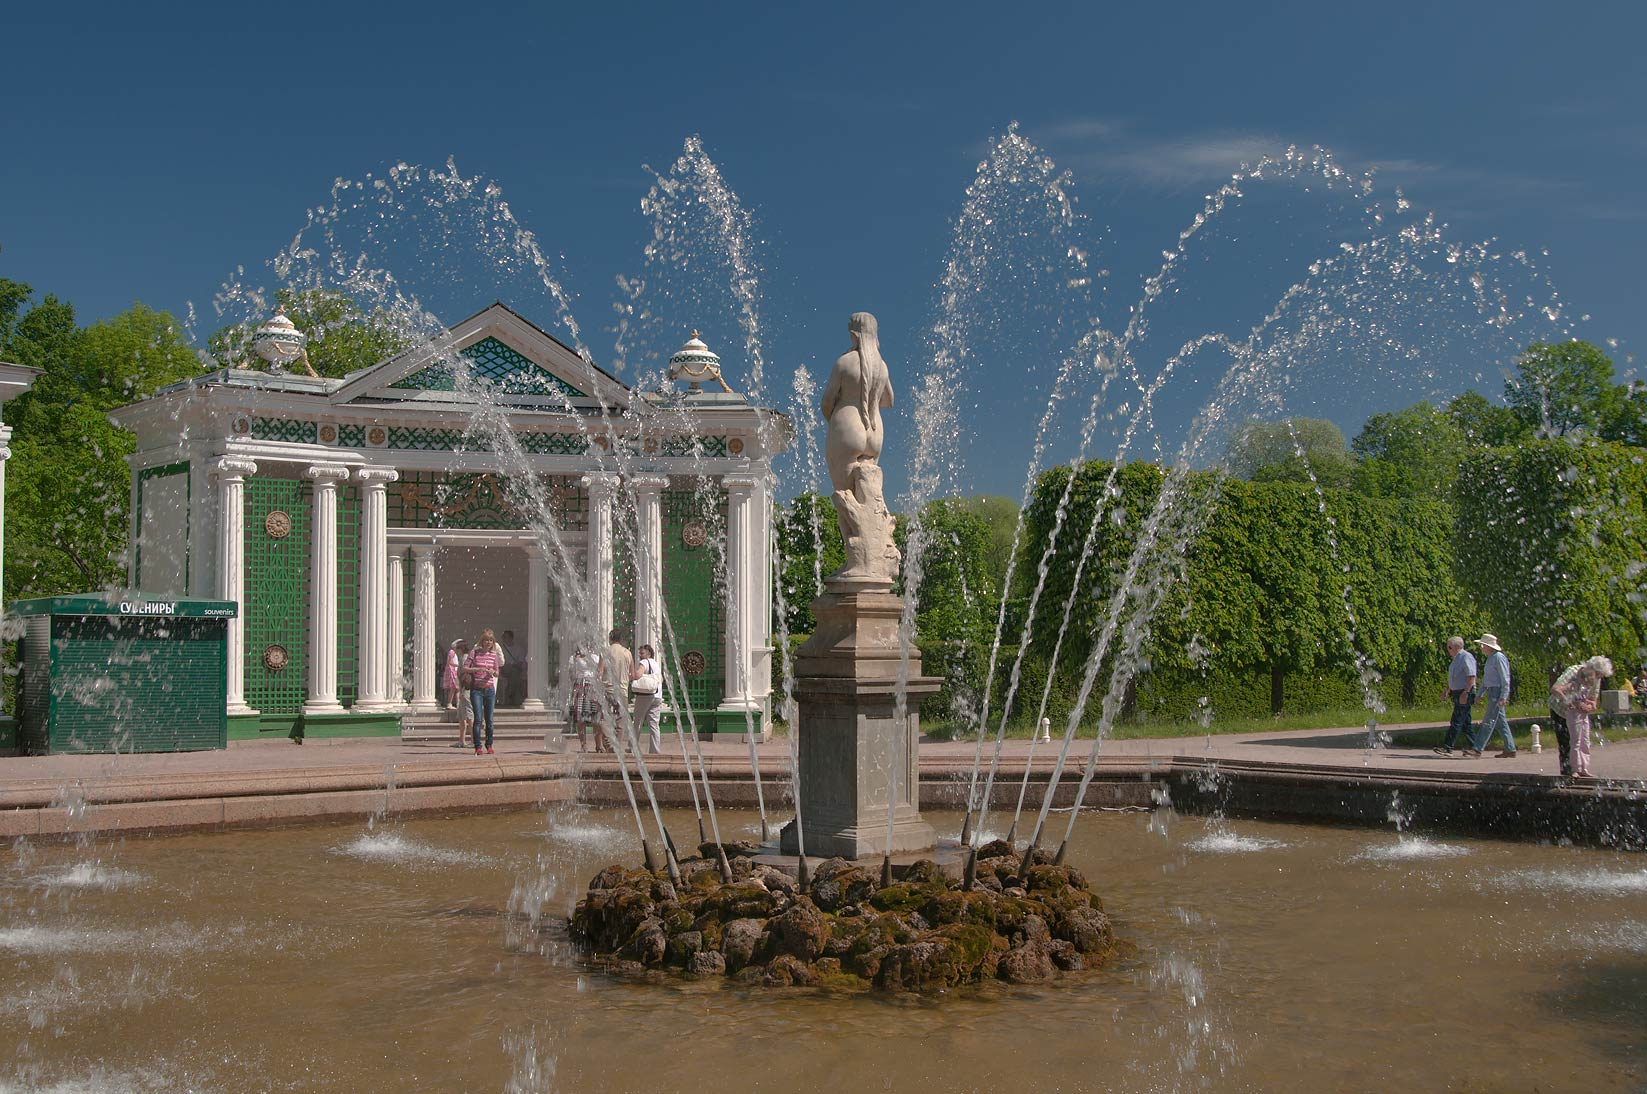 Venus fountain in peterhof west from saint petersburg russia june 6